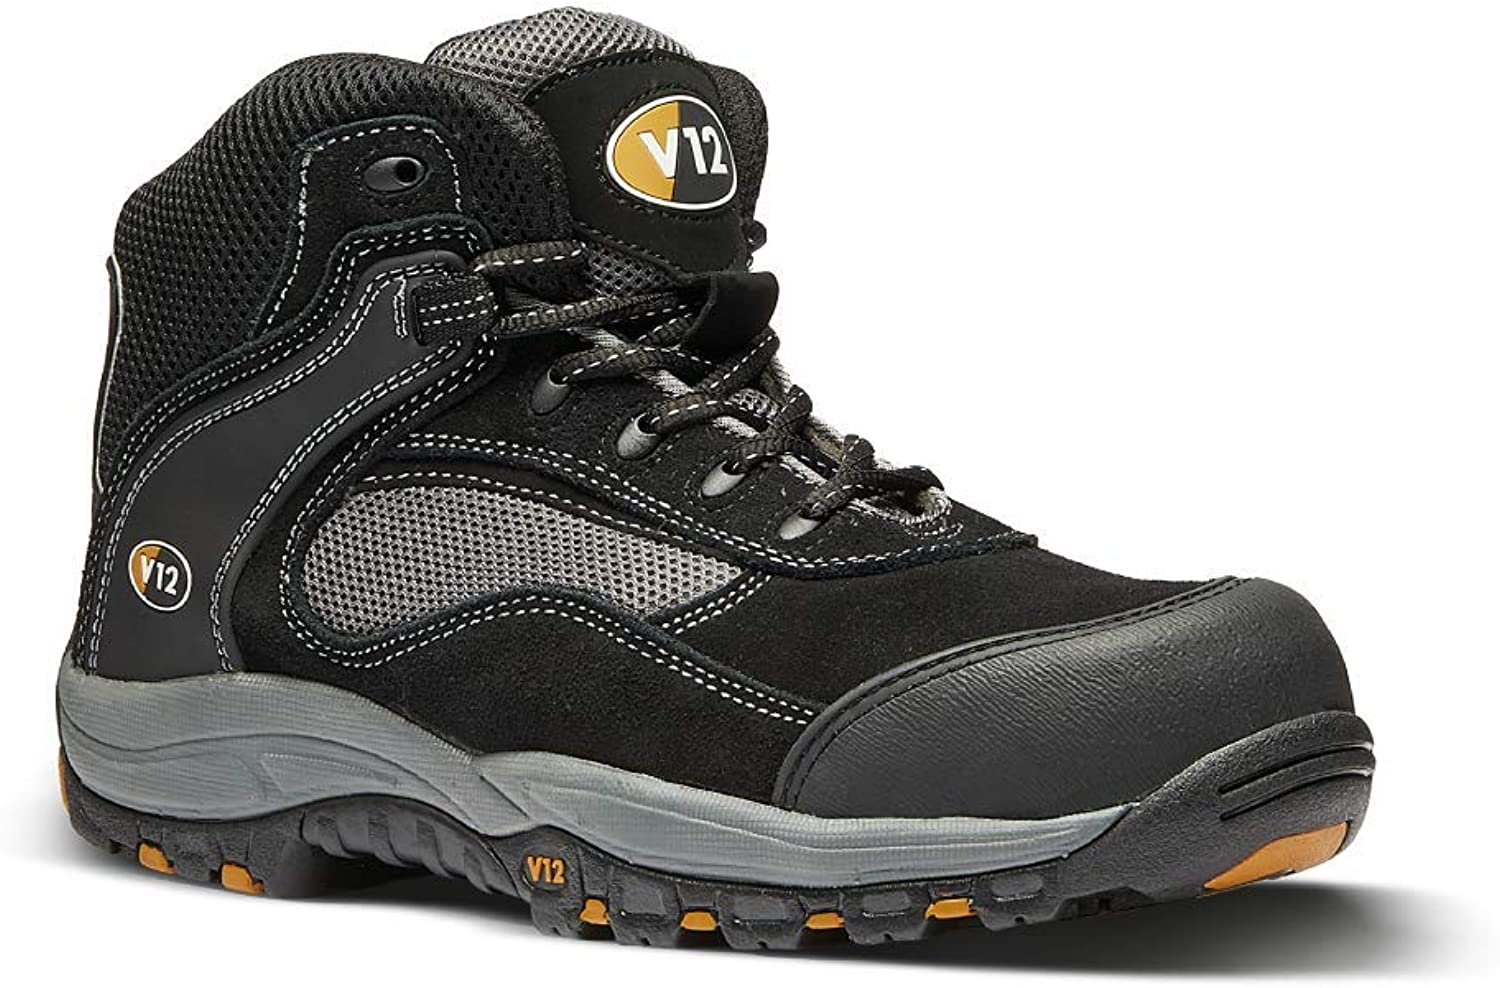 V12 Unisex-Adult Track S1 S1 S1 Safety Stiefel VS360  766fd0